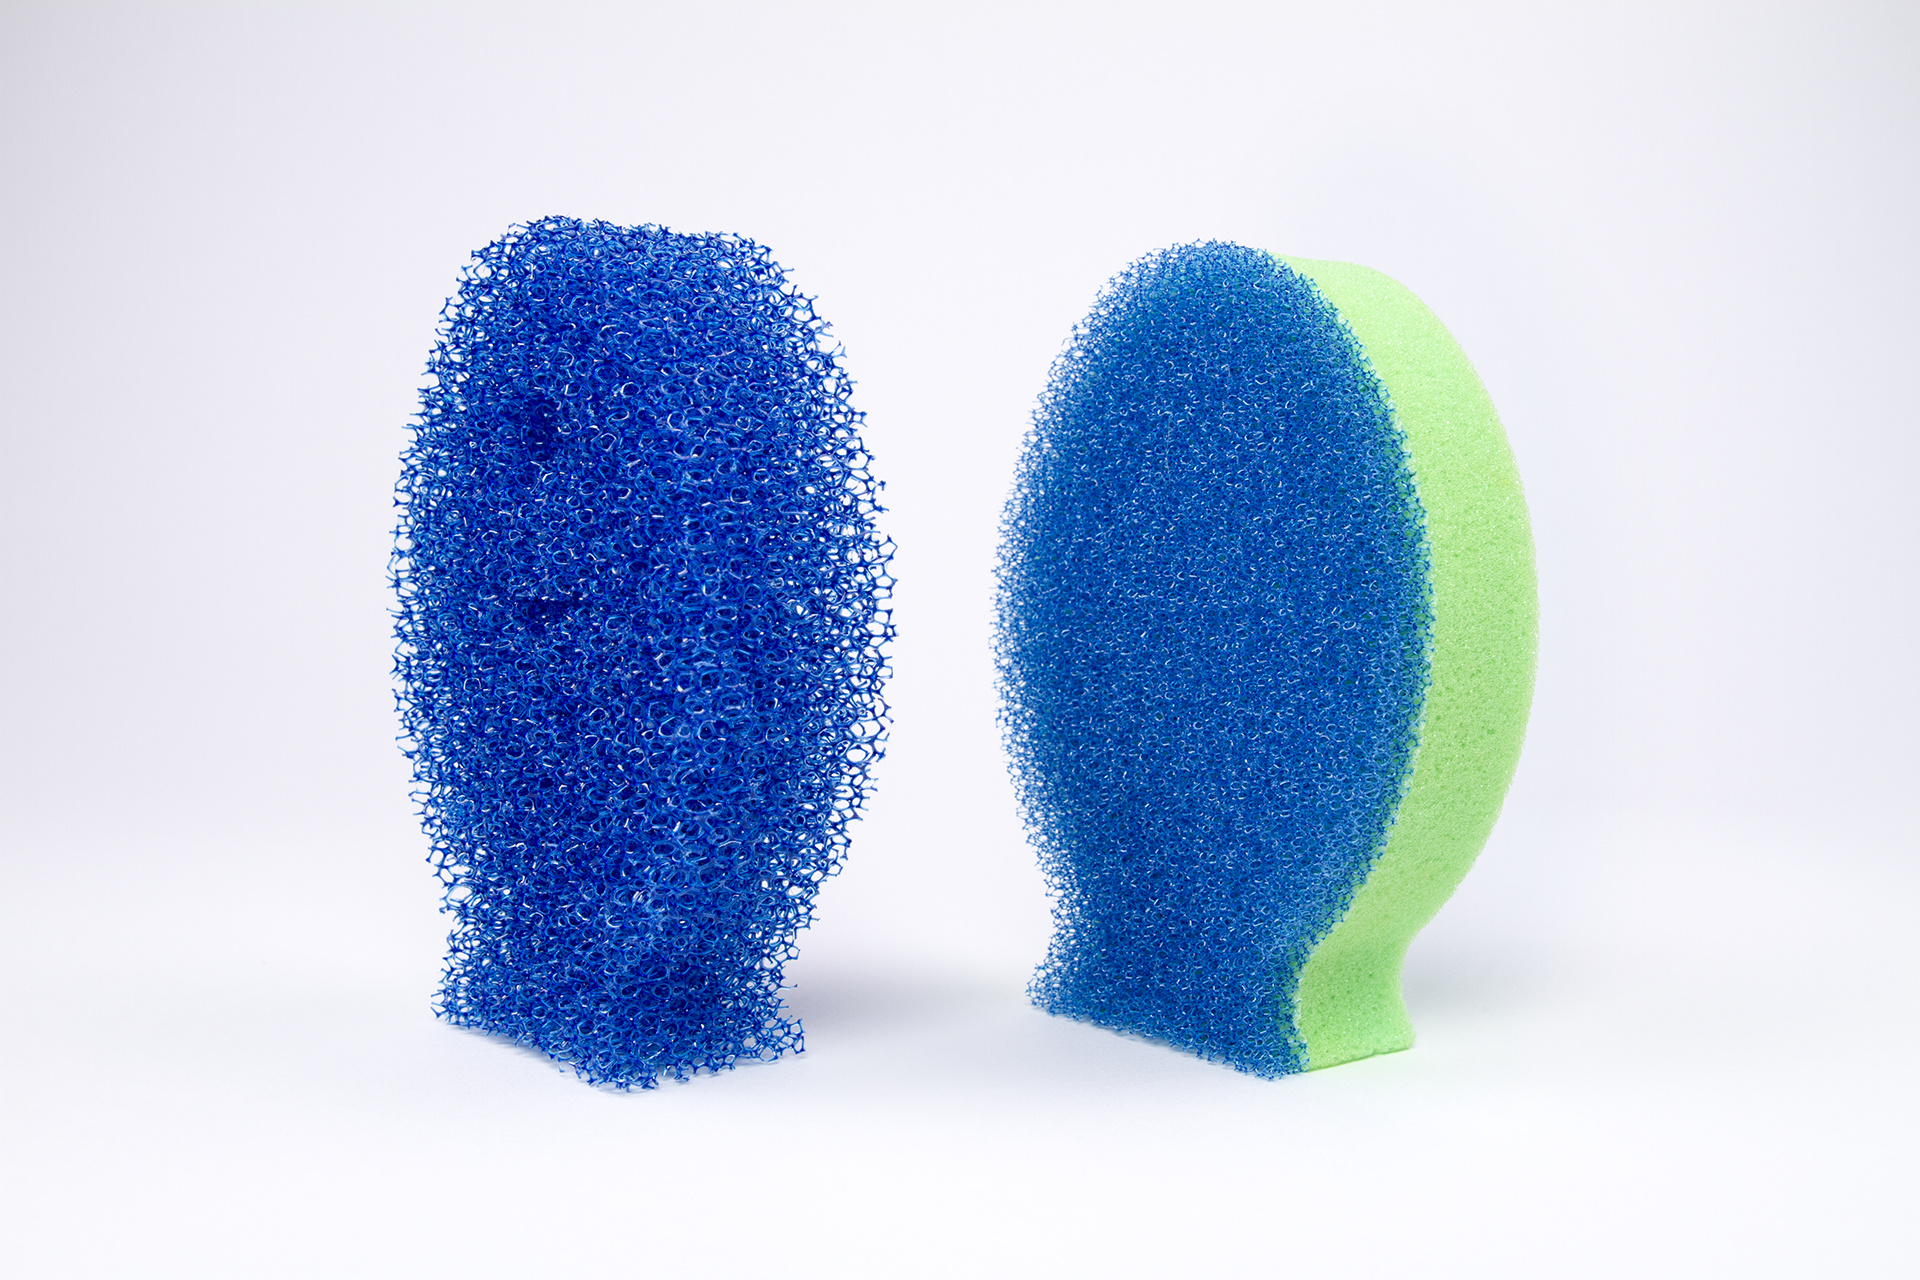 dishfish-scrubber-and-dual-06-1920x1080.png